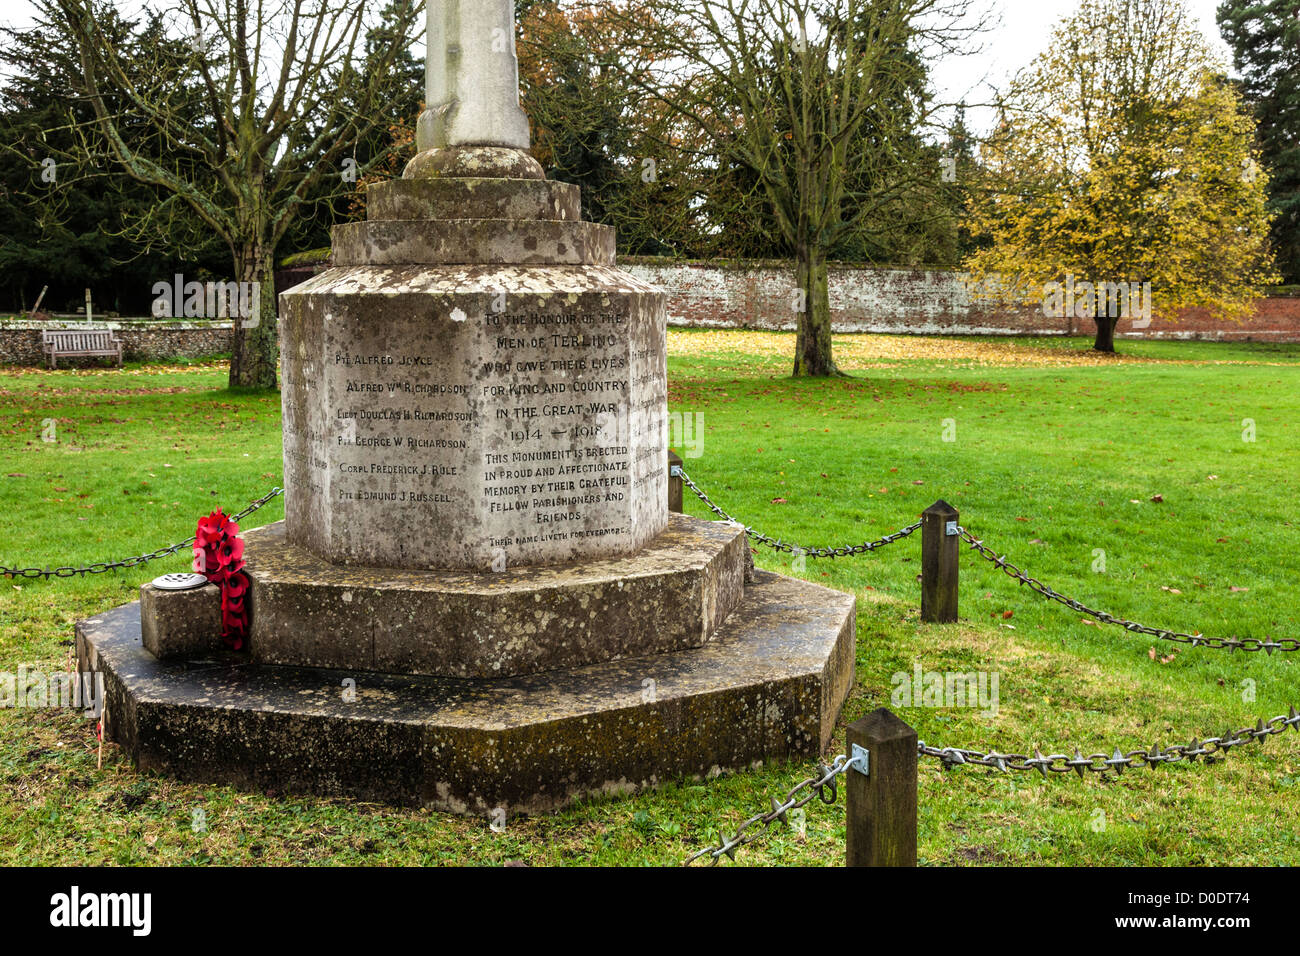 Village War Memorial - Stock Image